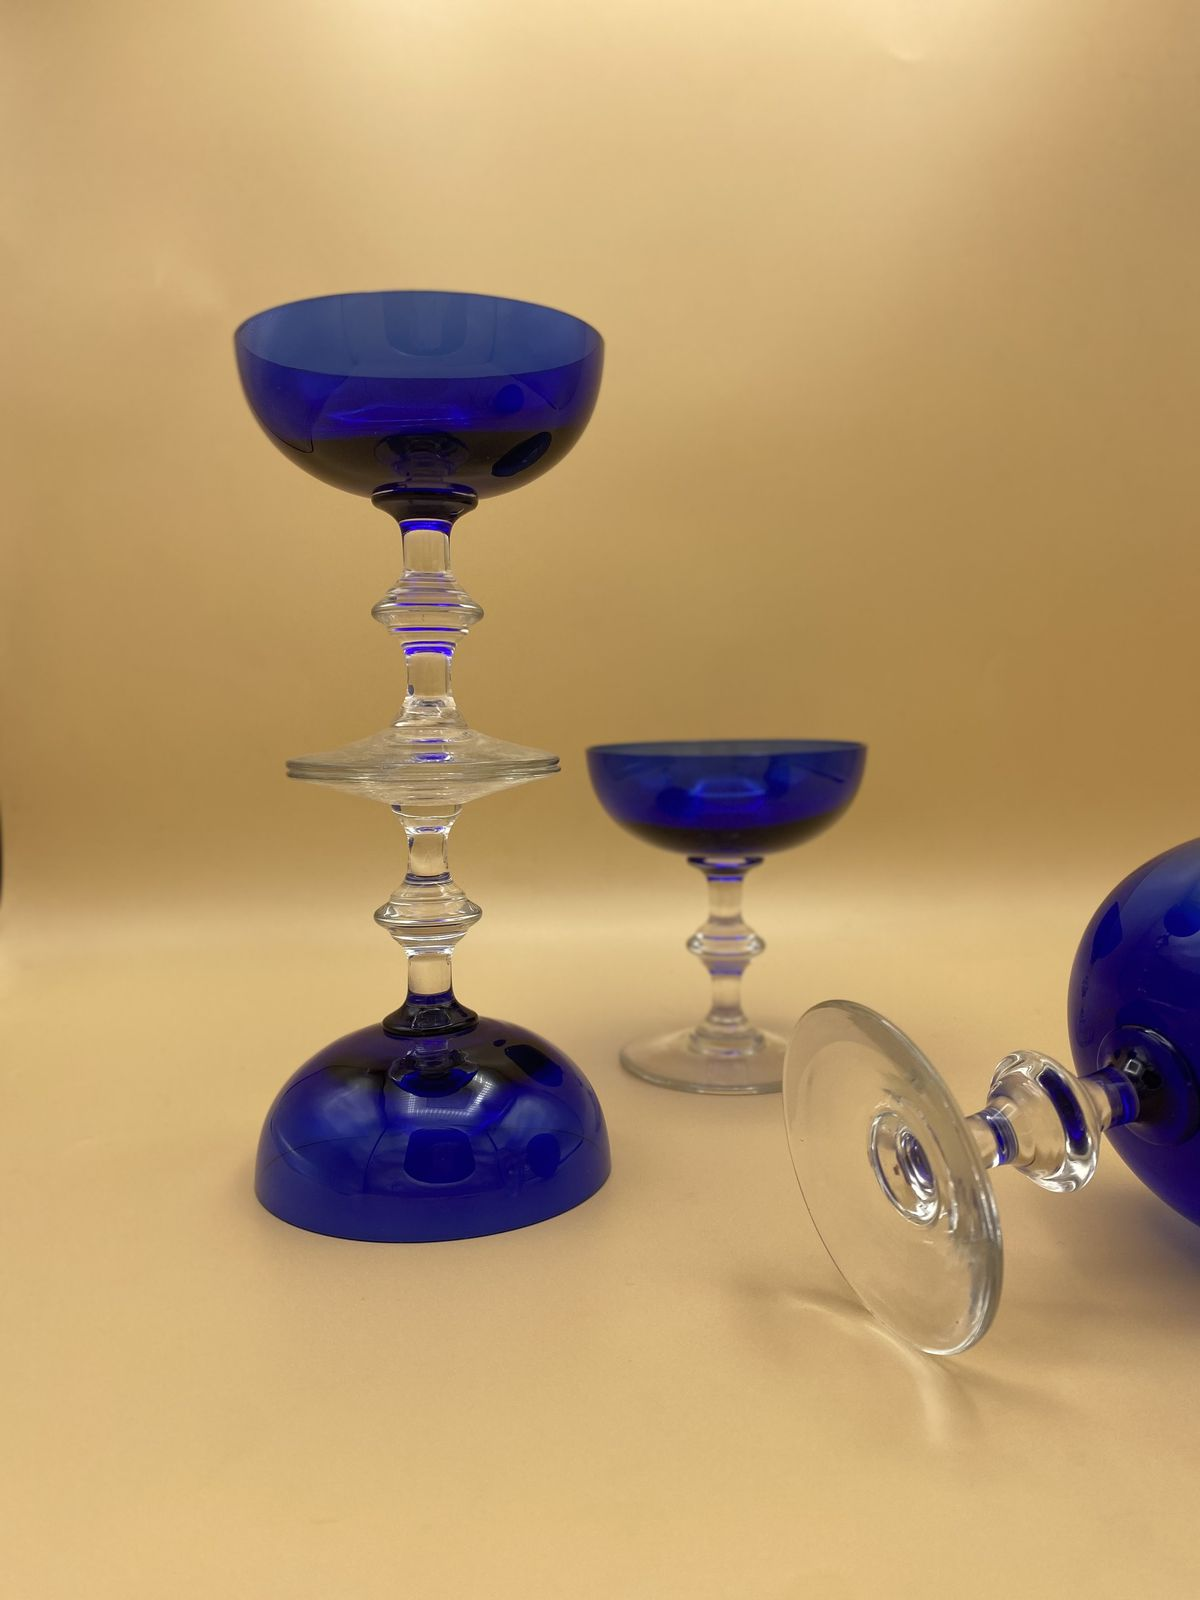 Four coupe glasses with blue bowls and clear stems